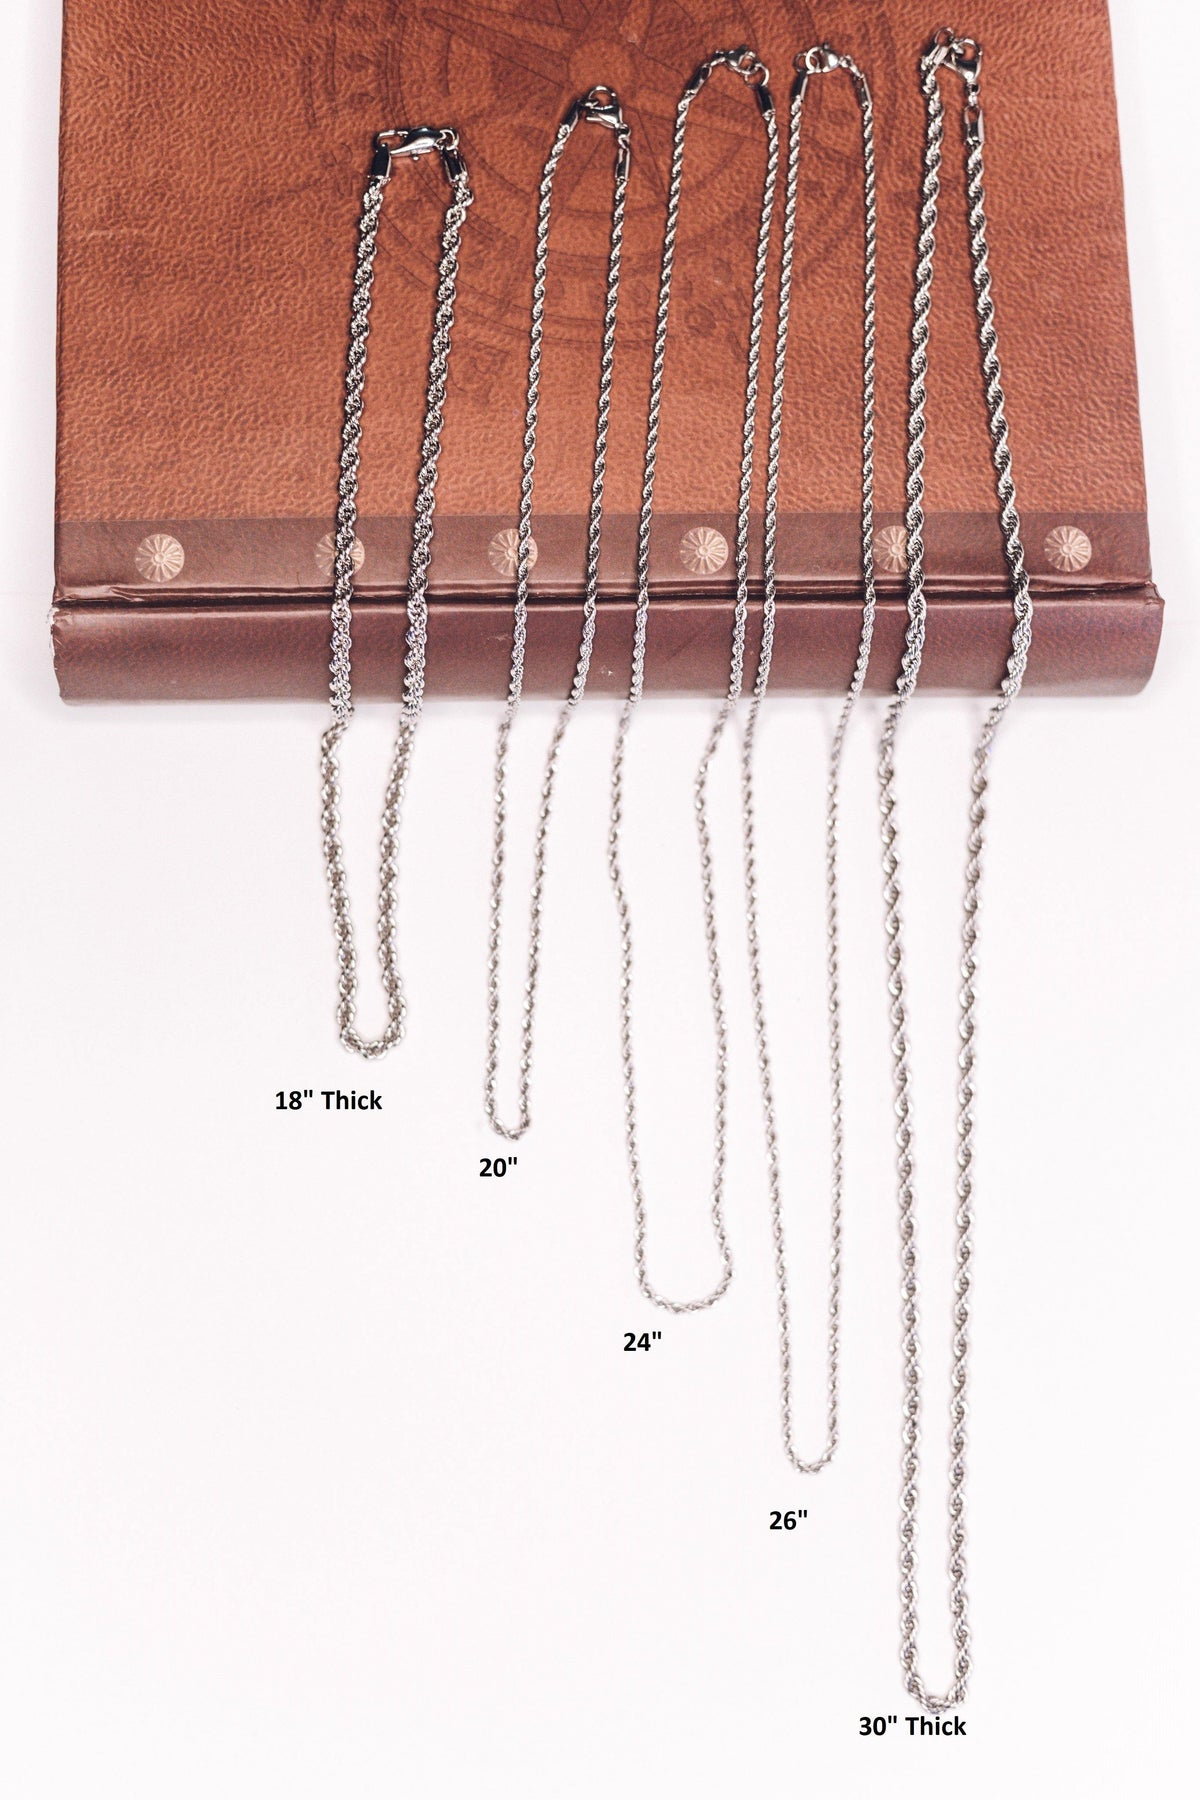 "Stainless Steel Rope Chain Necklaces- 18"" 20"" 24"" 26"" 30"" - House of Morgan Pewter"